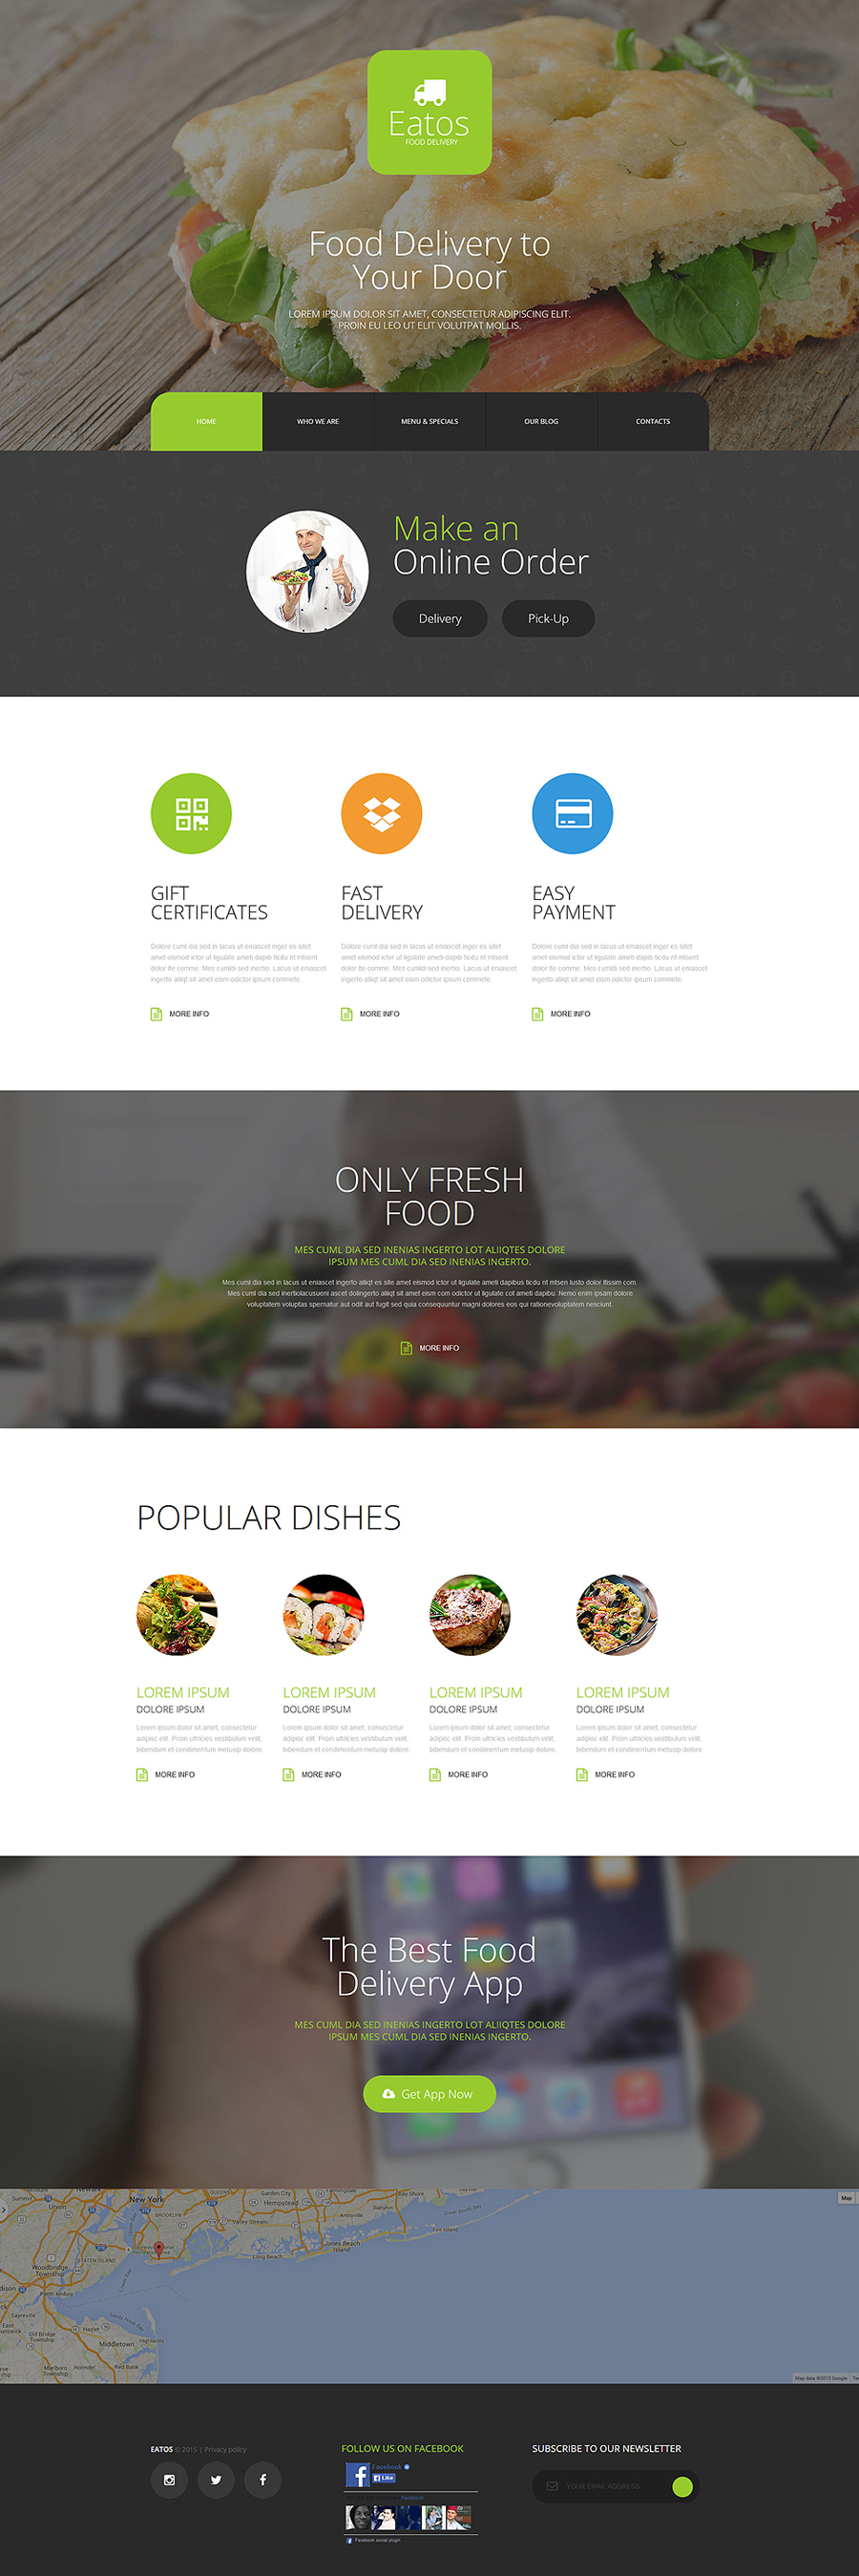 Eatos Joomla Template